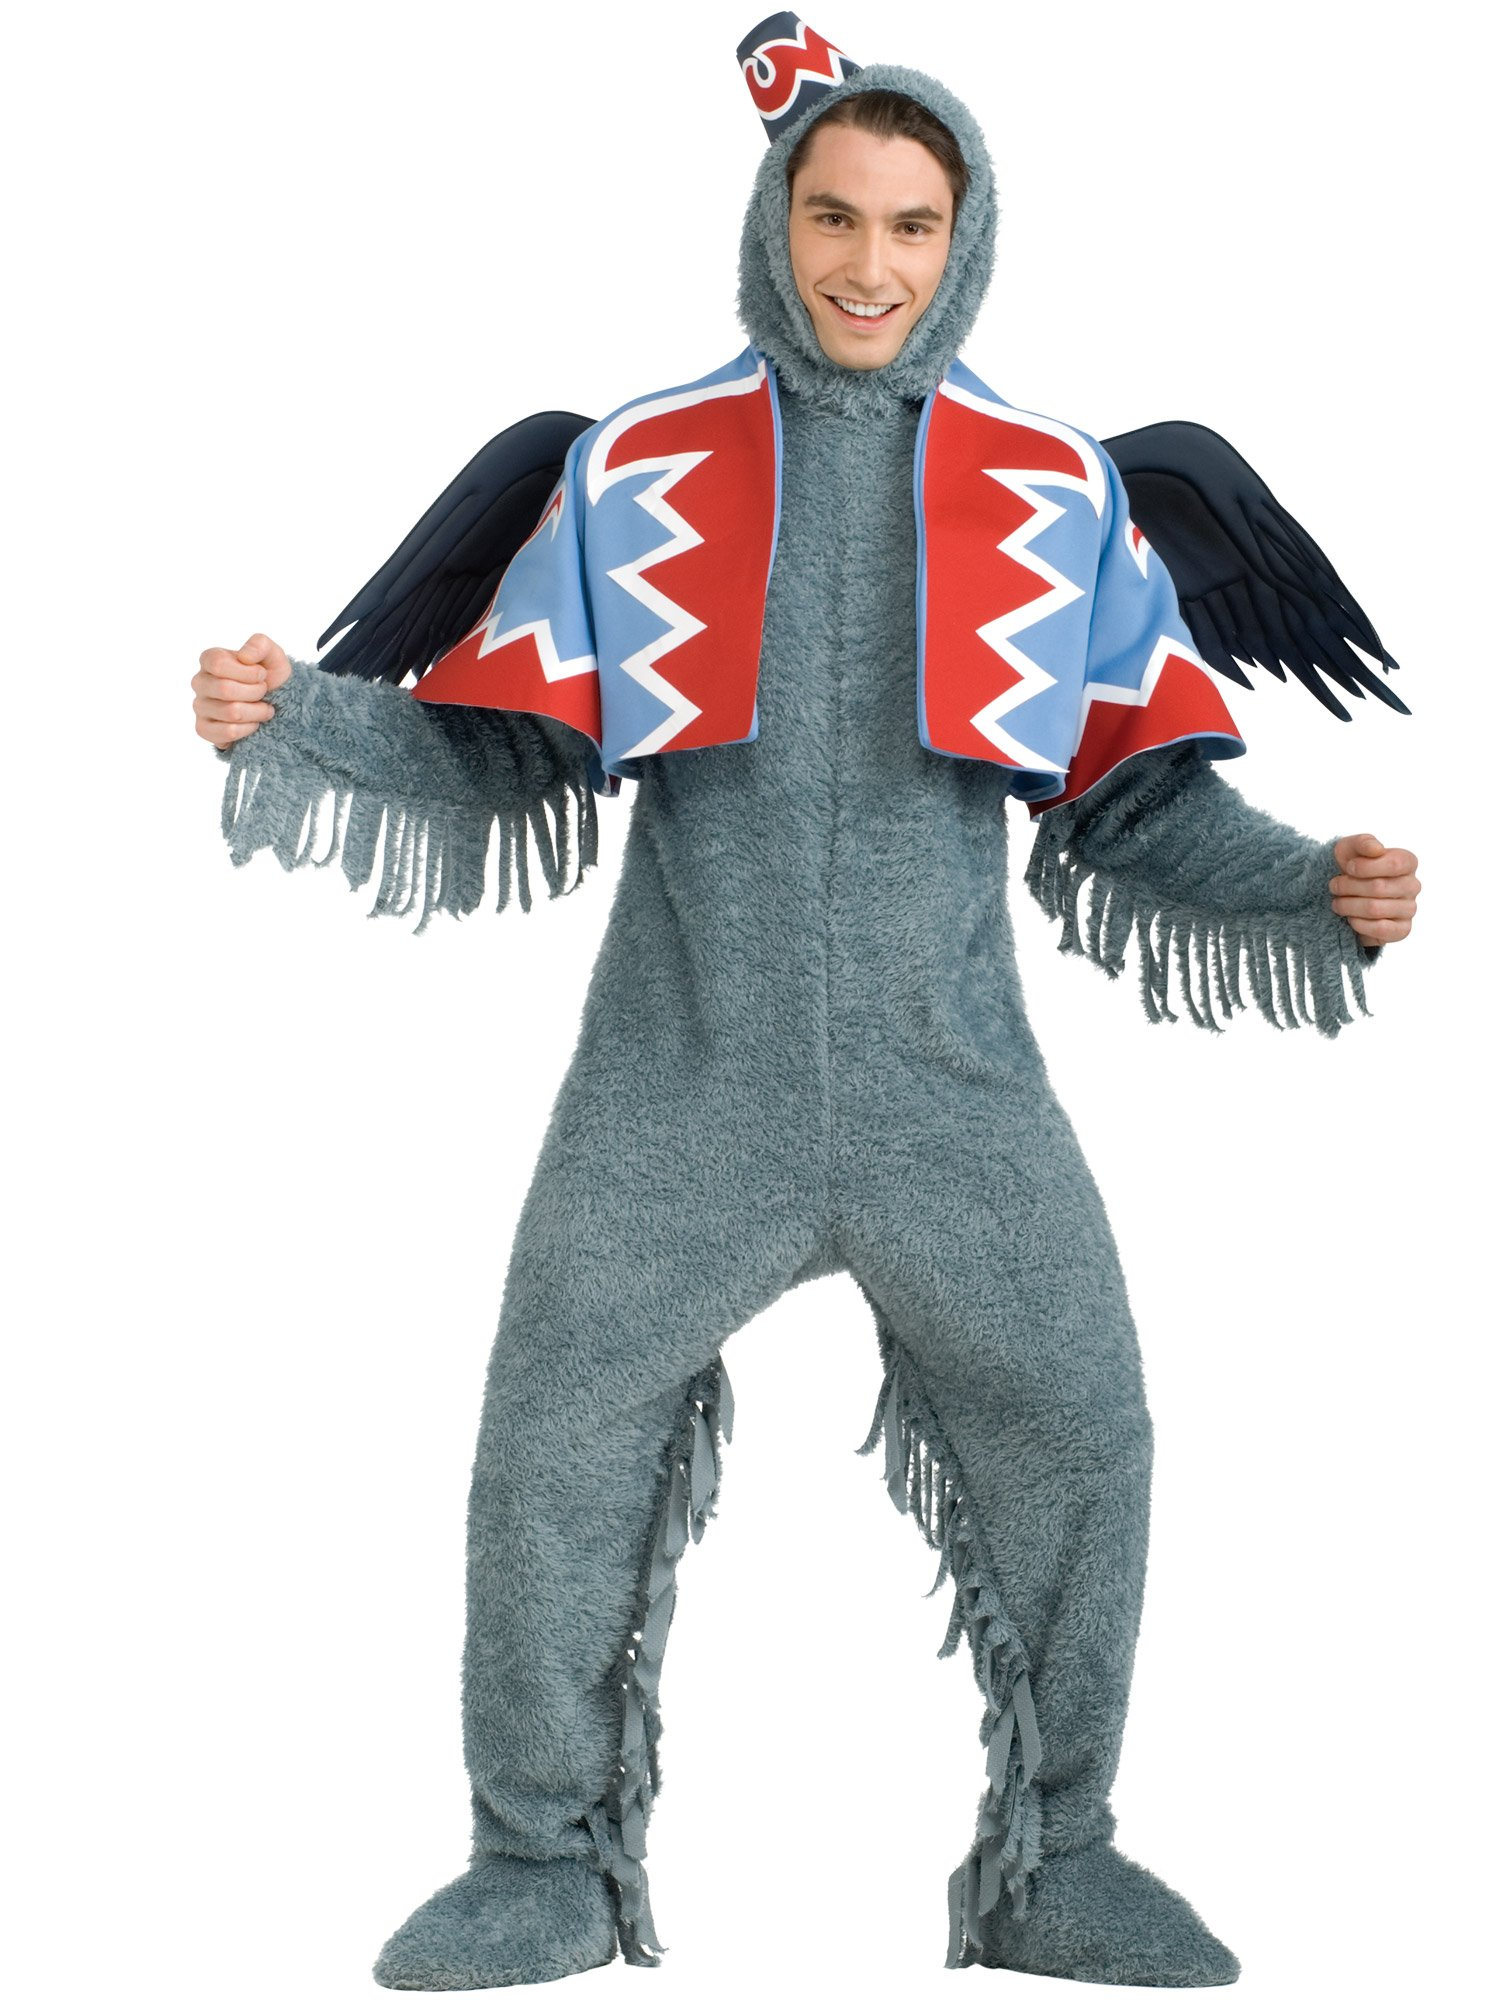 Rubie's Wizard of Oz 75th Anniversary Edition Deluxe Winged Monkey, Gray, Standard Costume